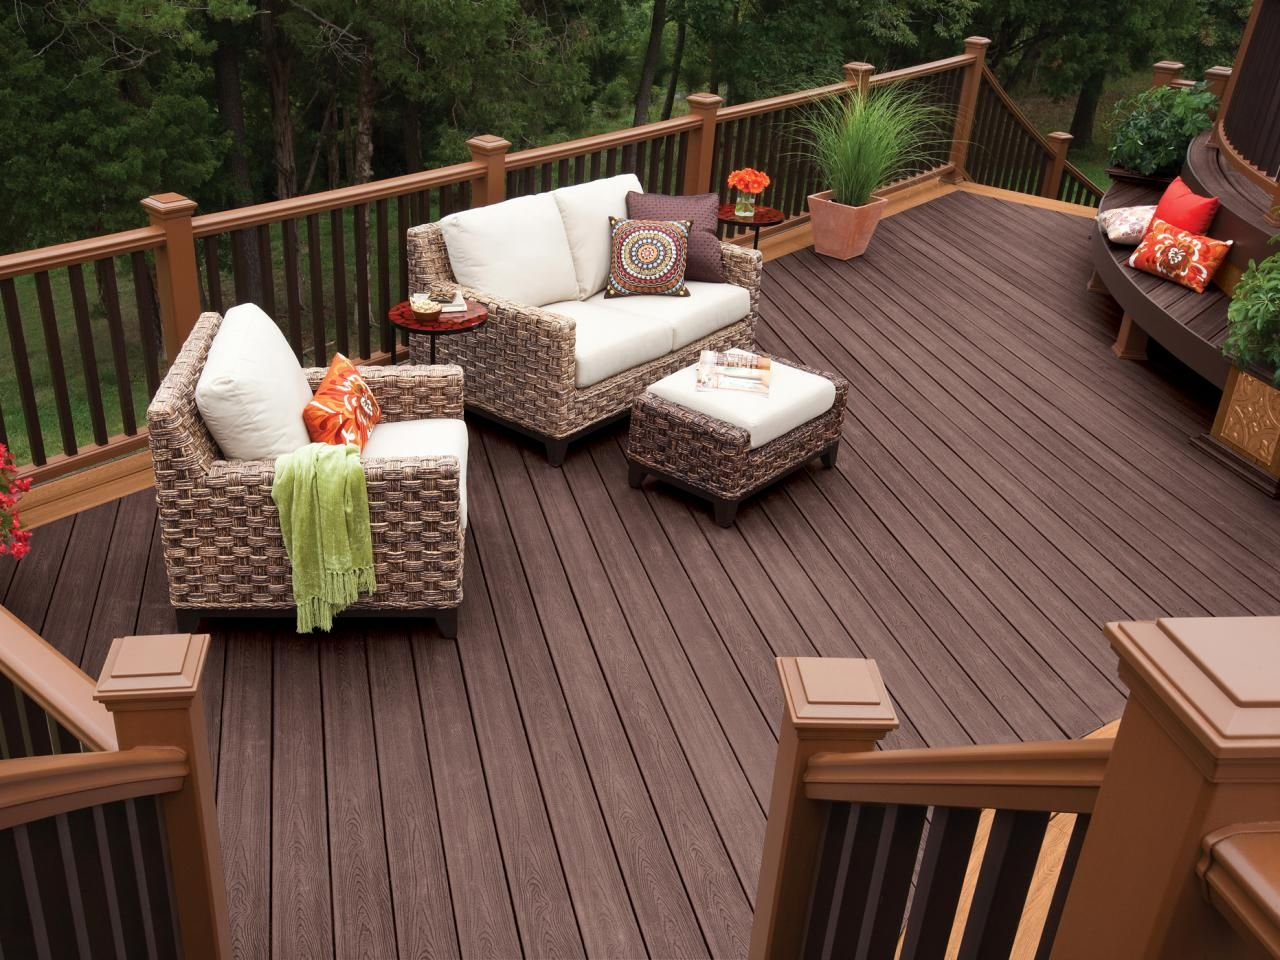 Relaxing Contemporary Deck With Wicker Furniture Patio Design Deck Makeover Deck Design